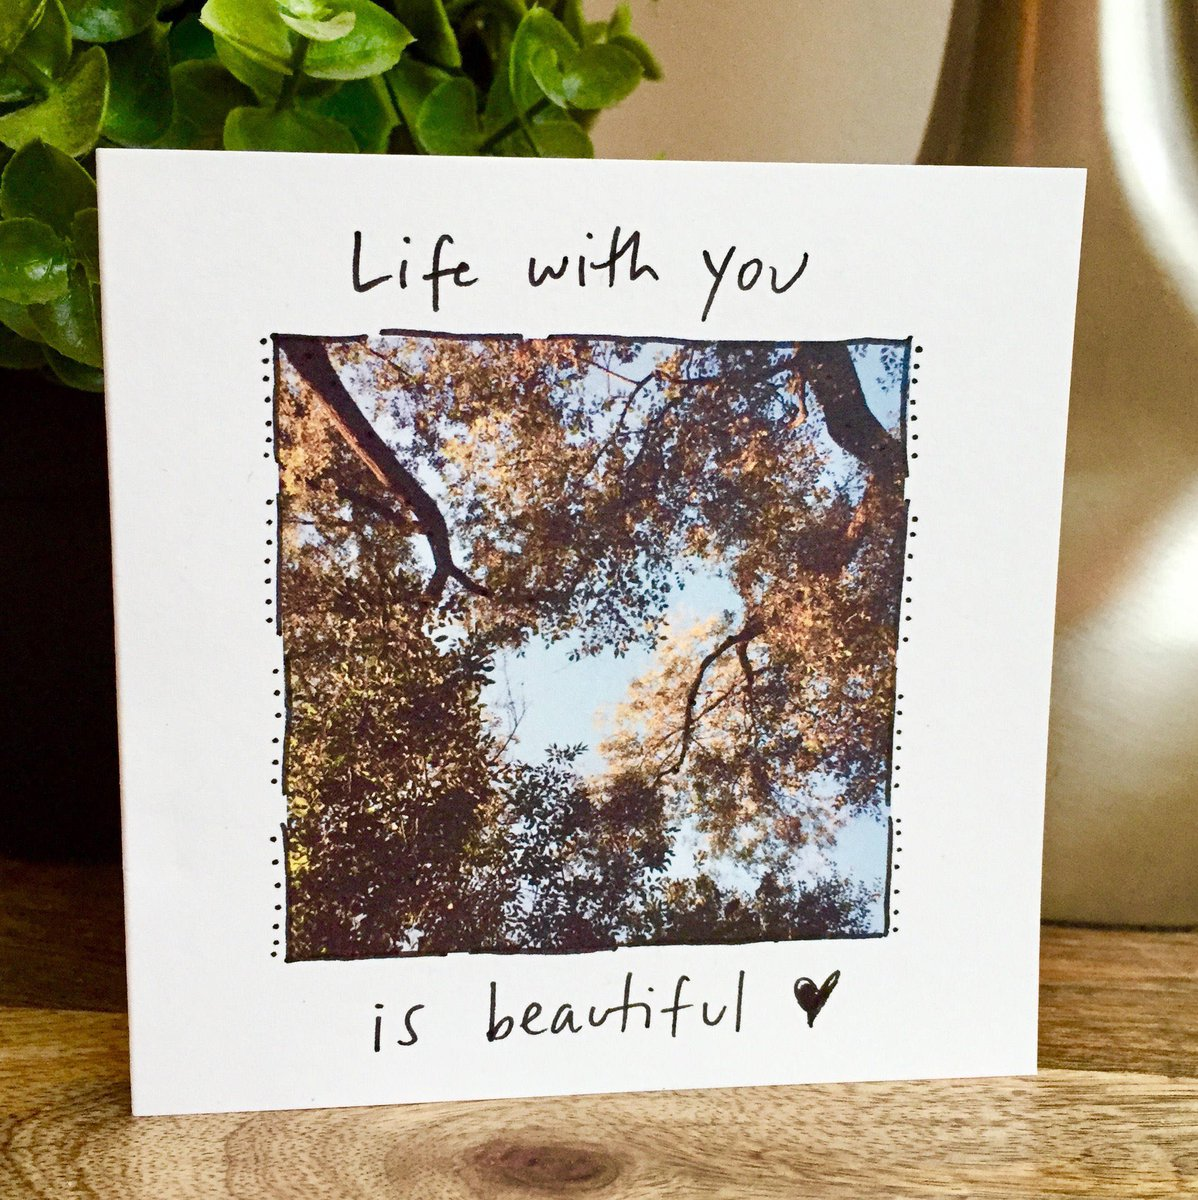 Excited to share the latest addition to my #etsy shop: Life is beautiful card, nature lover card, One Year Anniversary Card for husband, Paper Anniversary, anniversary card wife, 1st anniversary https://t.co/1iaDQ3Gf1n #papergoods #naturelovercard #treecard #lifeisbeau https://t.co/aVPbHIHMps